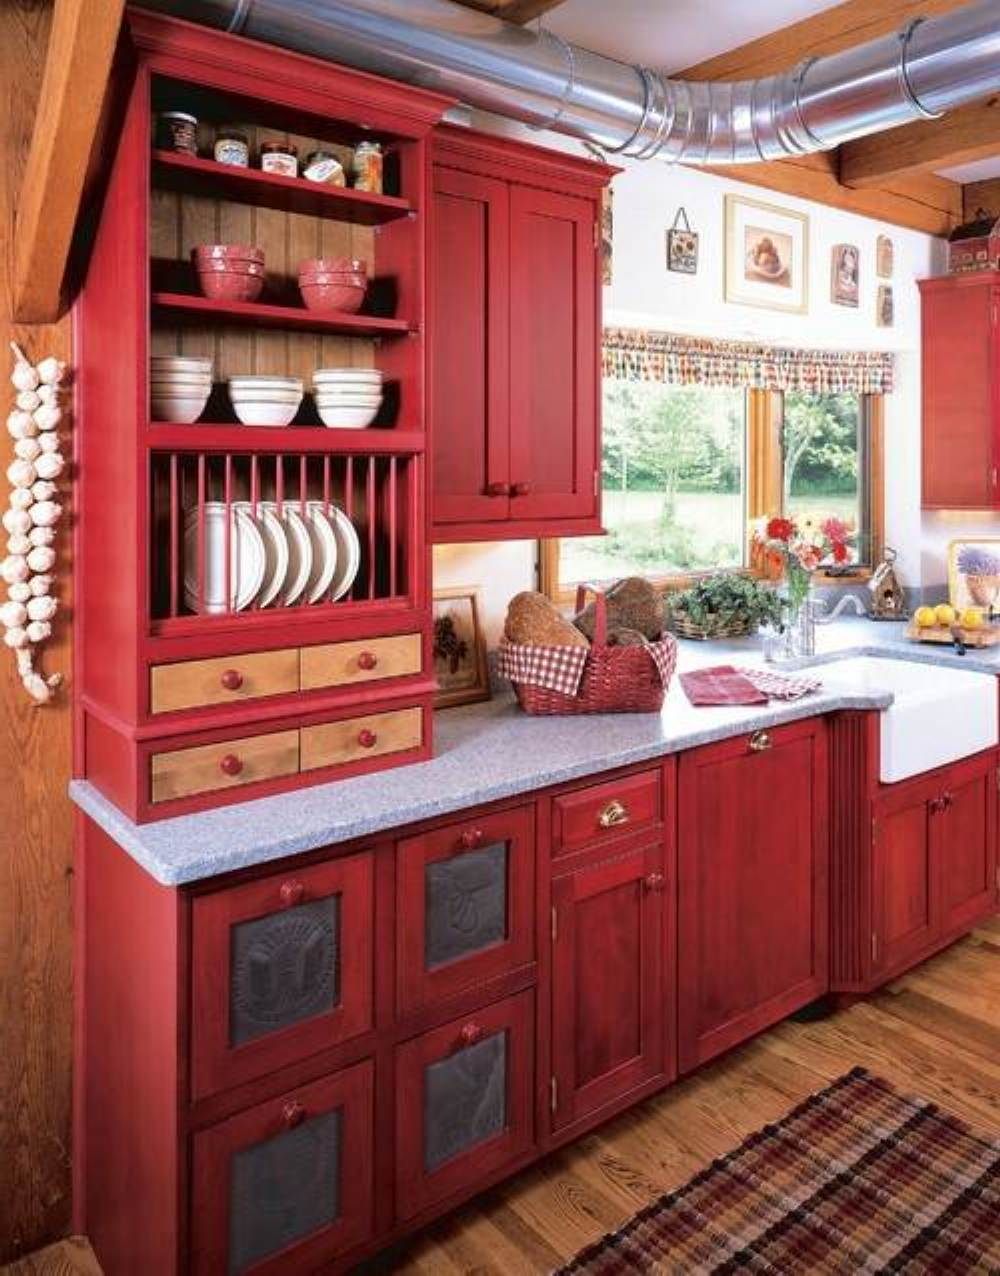 exquisite-big-red-kitchen-cabinets-and-small-glass-window-plus-chic-wooden-floor